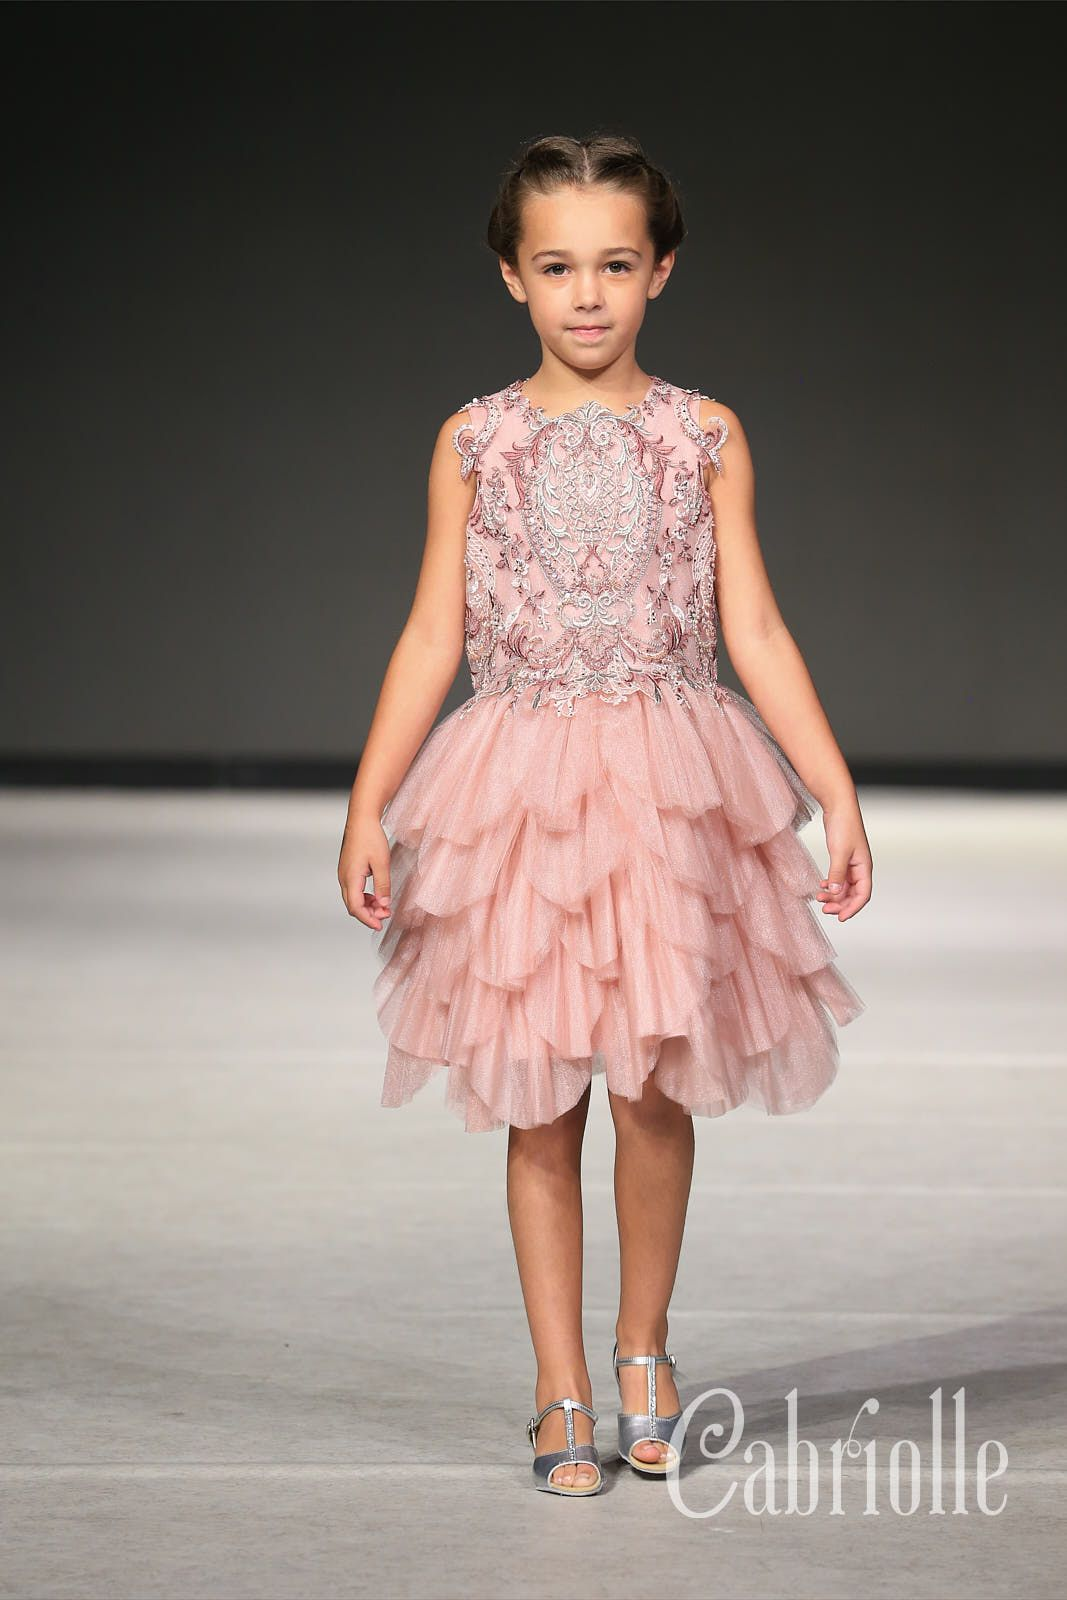 Welcome to Cabriolle - Cabriolle | Vancouver Kids Fashion Week SS18 ...